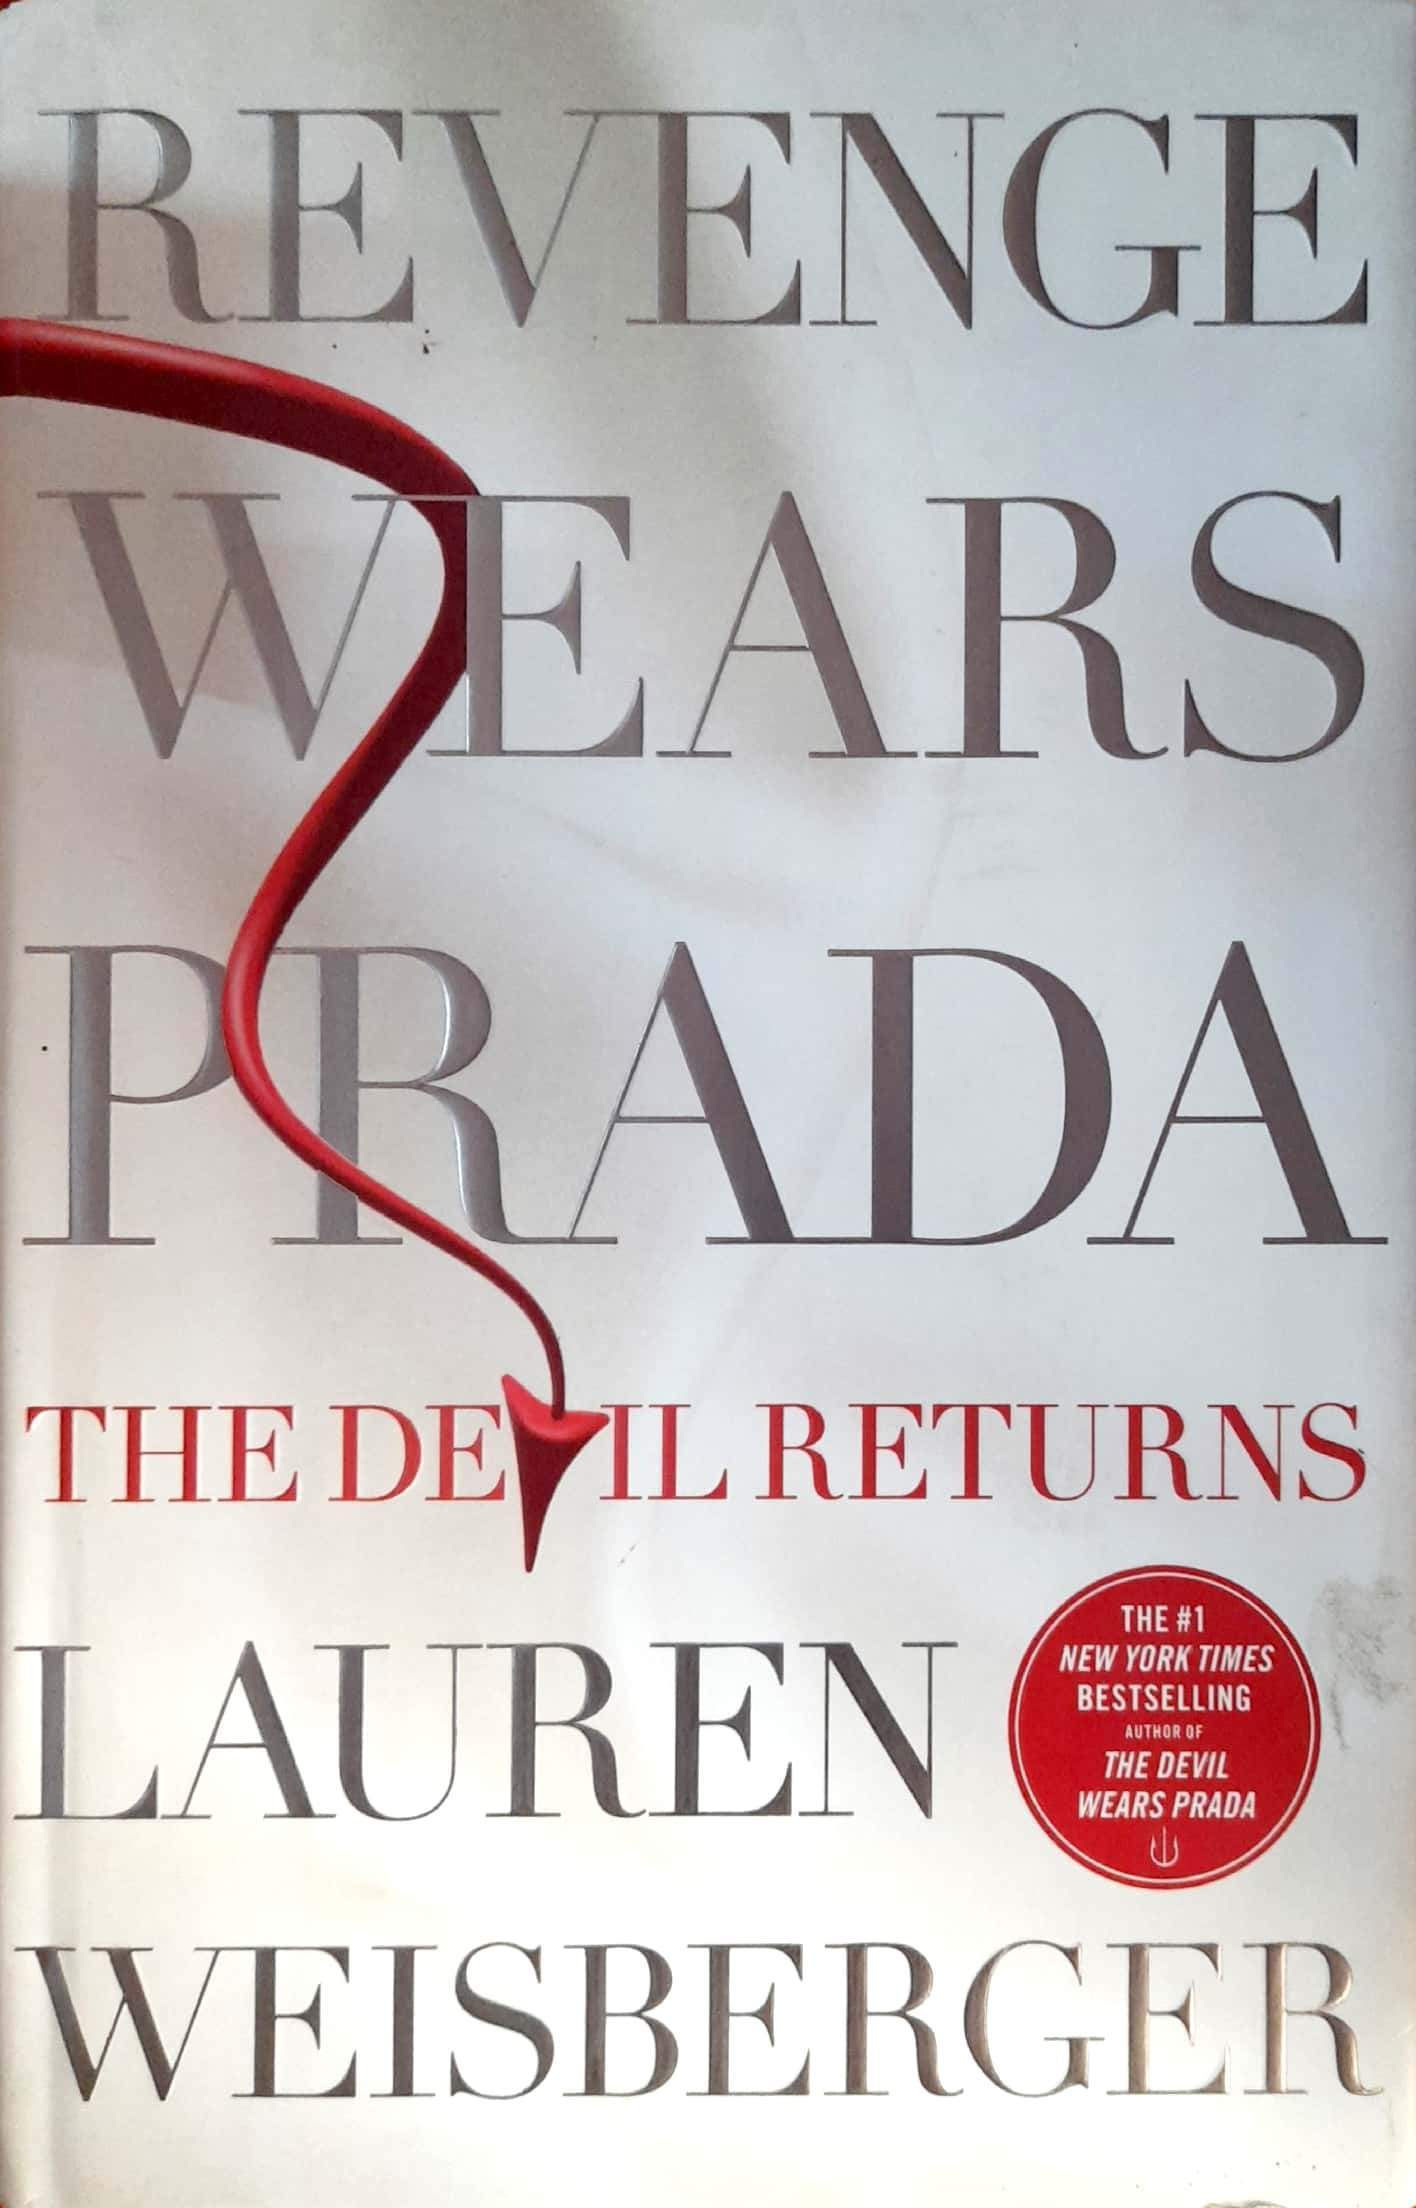 Revenge Wears Prada: The Devil Returns (The Devil Wears Prada #2) (Hardcover Edition)